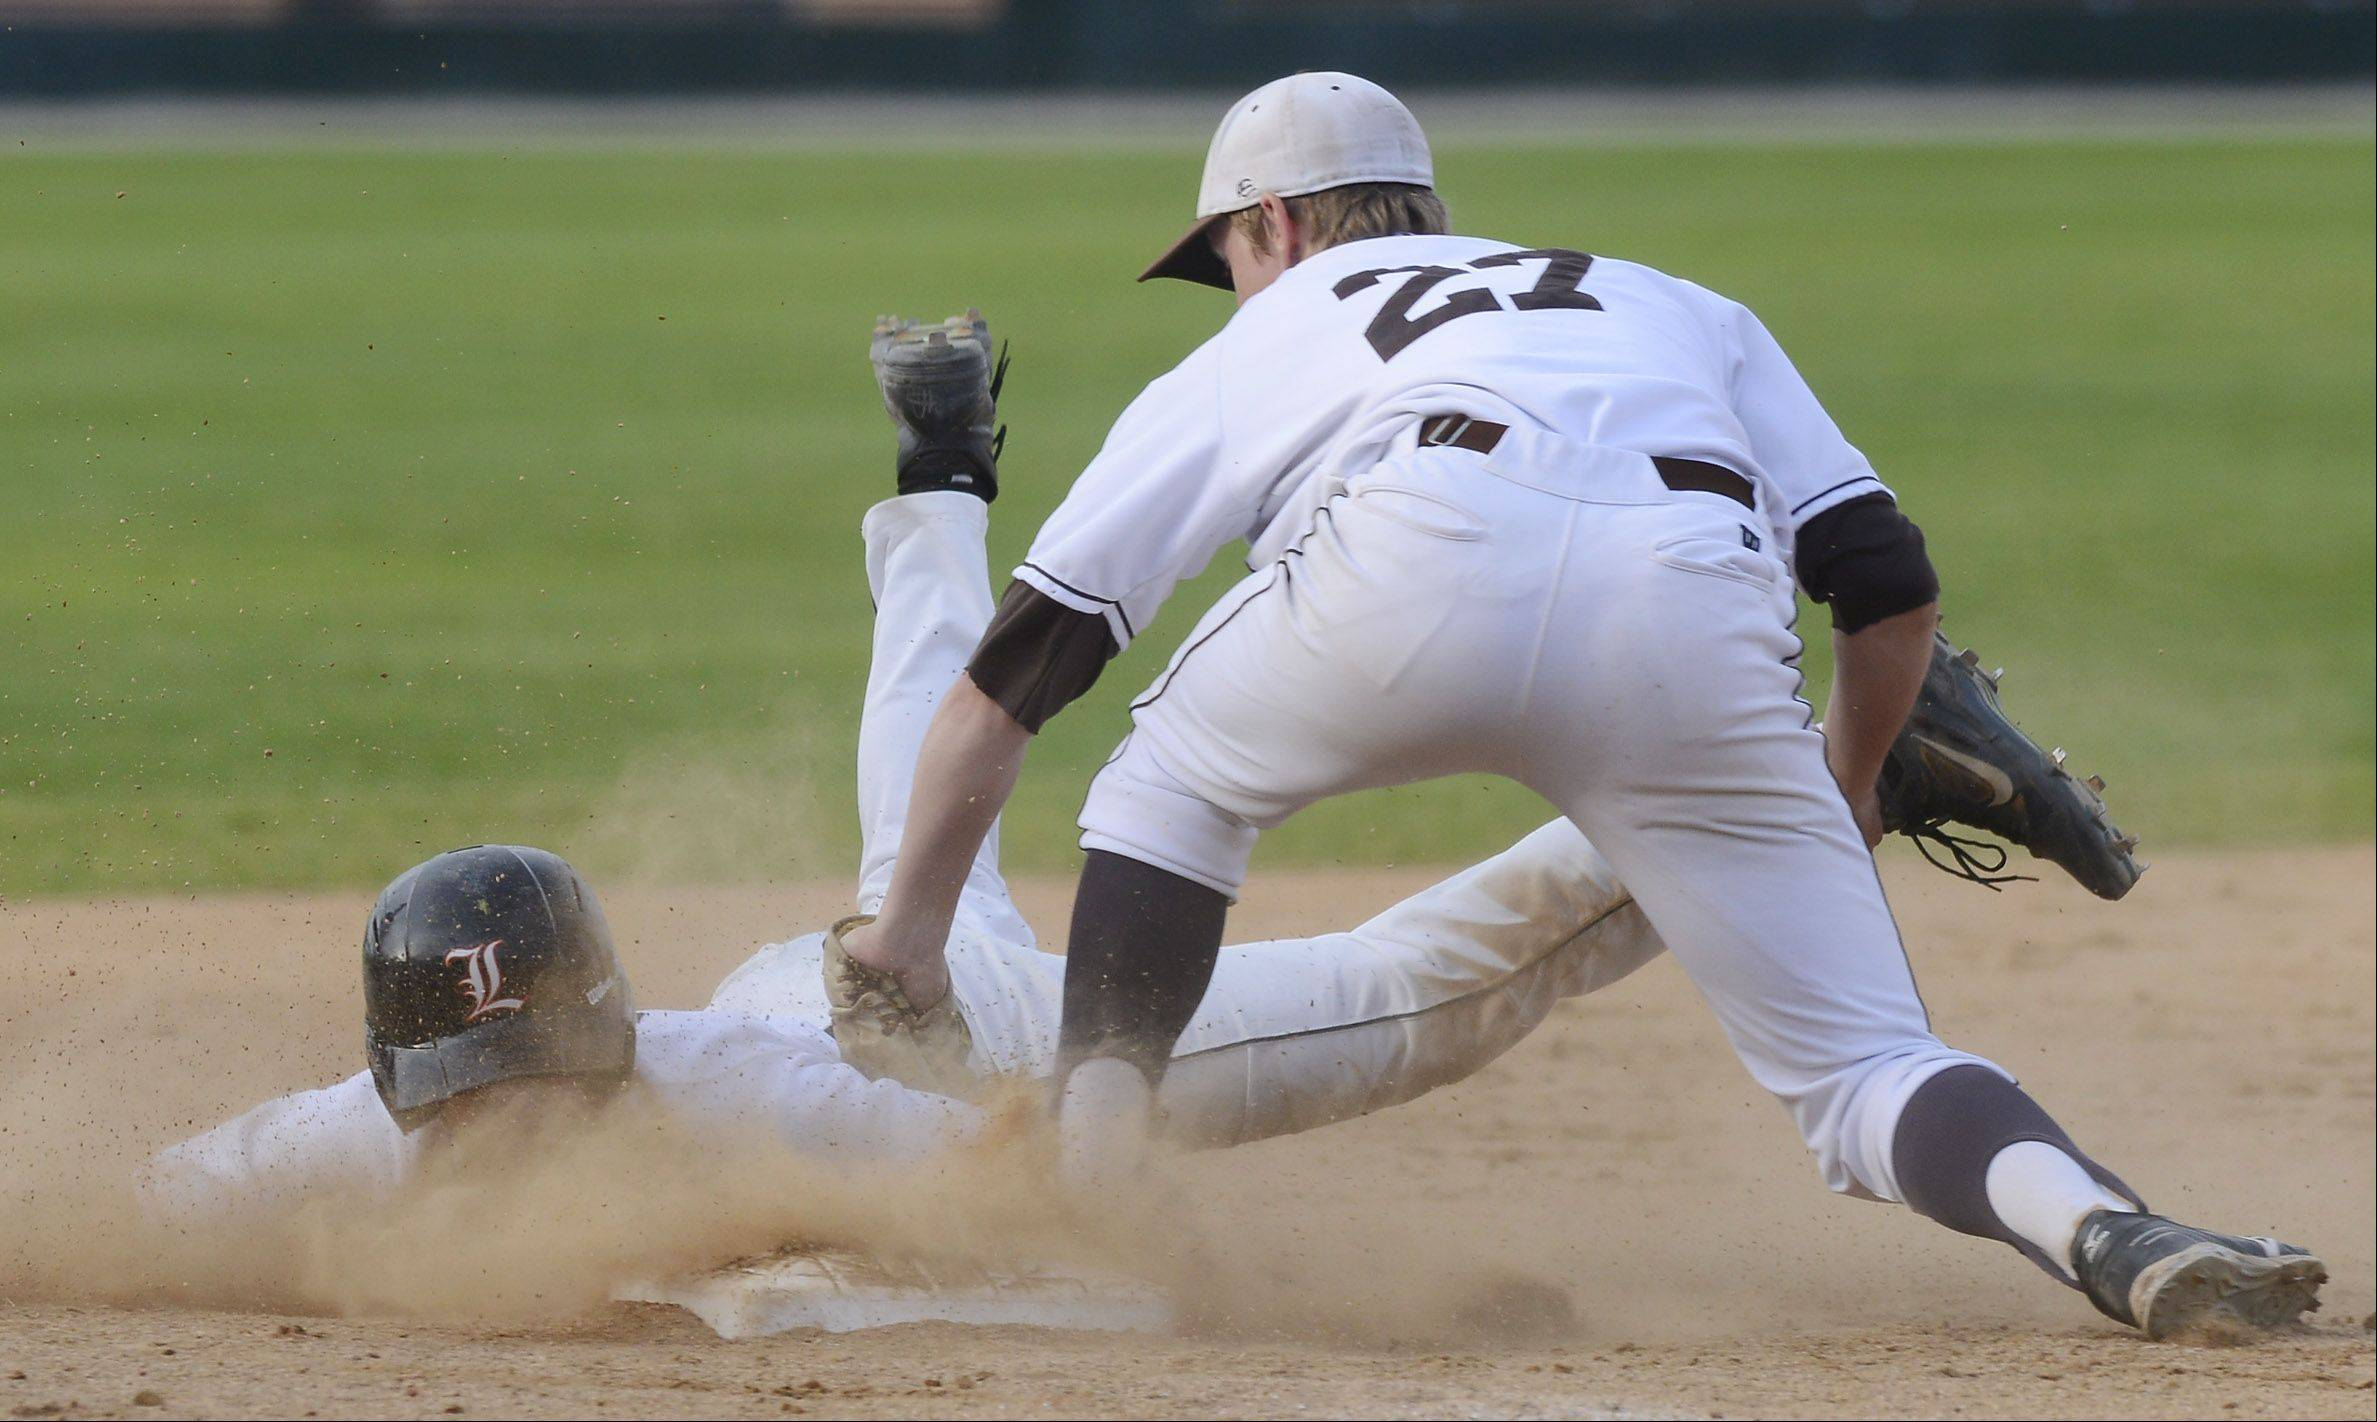 Libertyville's Justin Guarnaccio gets tagged out by Mt. Carmel third baseman Beau Filkins while trying to advance on an infield ground ball during the fifth inning of the Class 4A state baseball championship game at Silver Cross Field in Joliet Saturday.